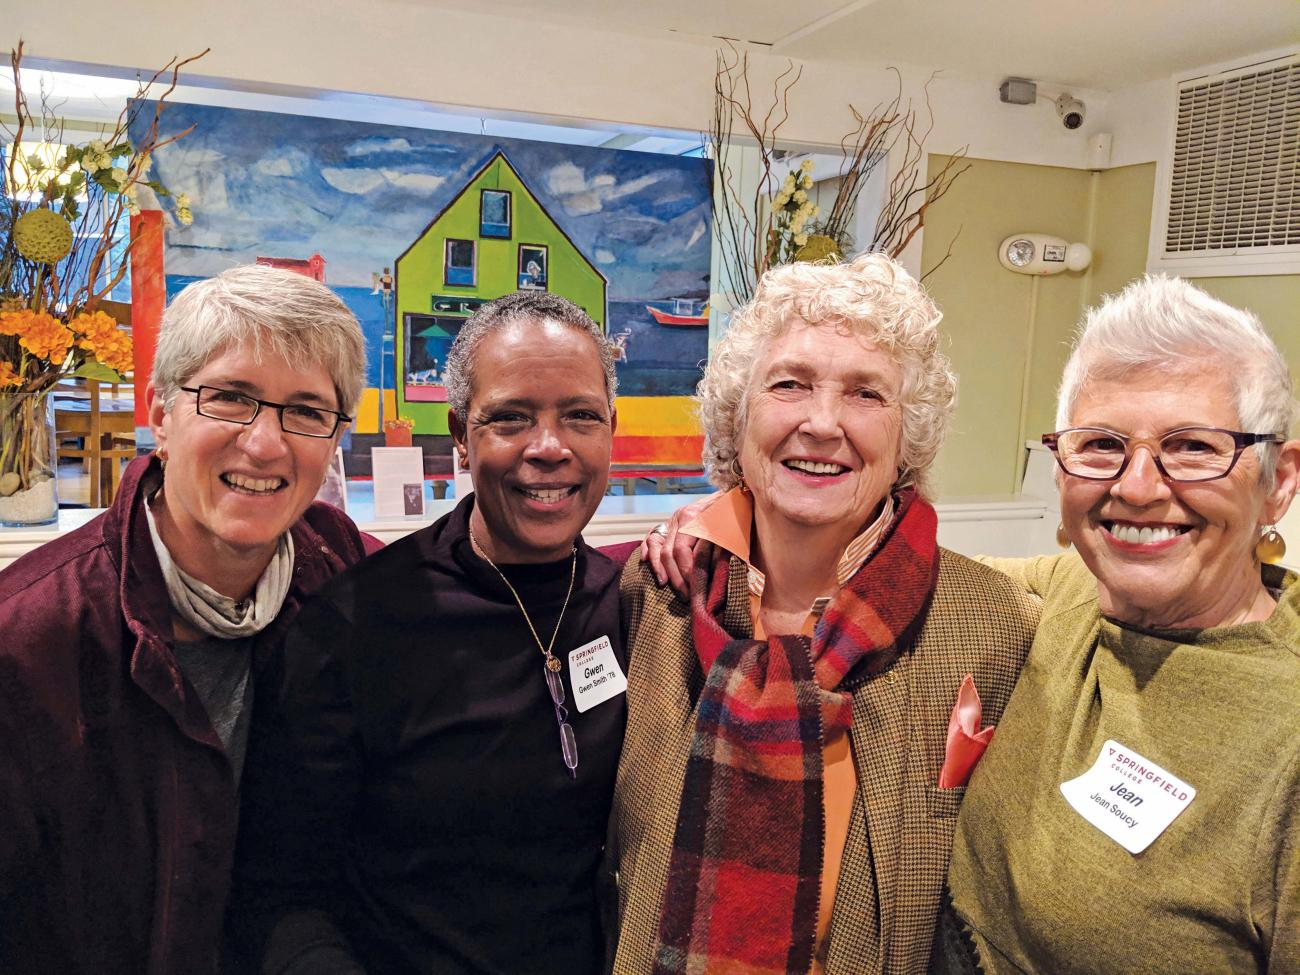 Murray at the Greenery Café owned by Amy Hale '85 in Ogunquit, Maine, 